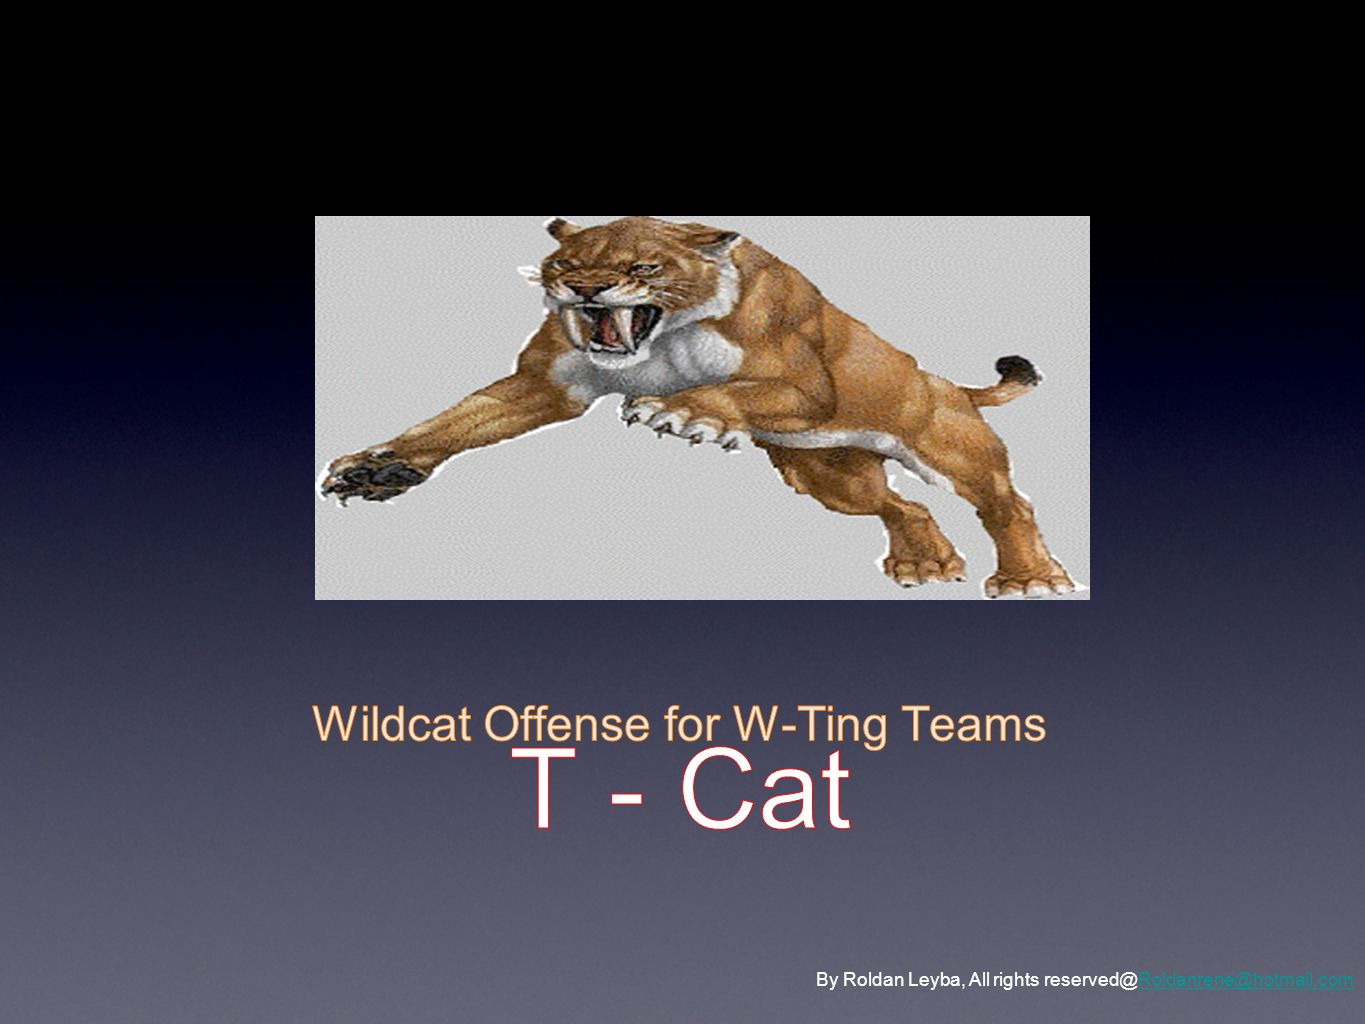 T - Cat Wildcat Offense for W-Ting Teams